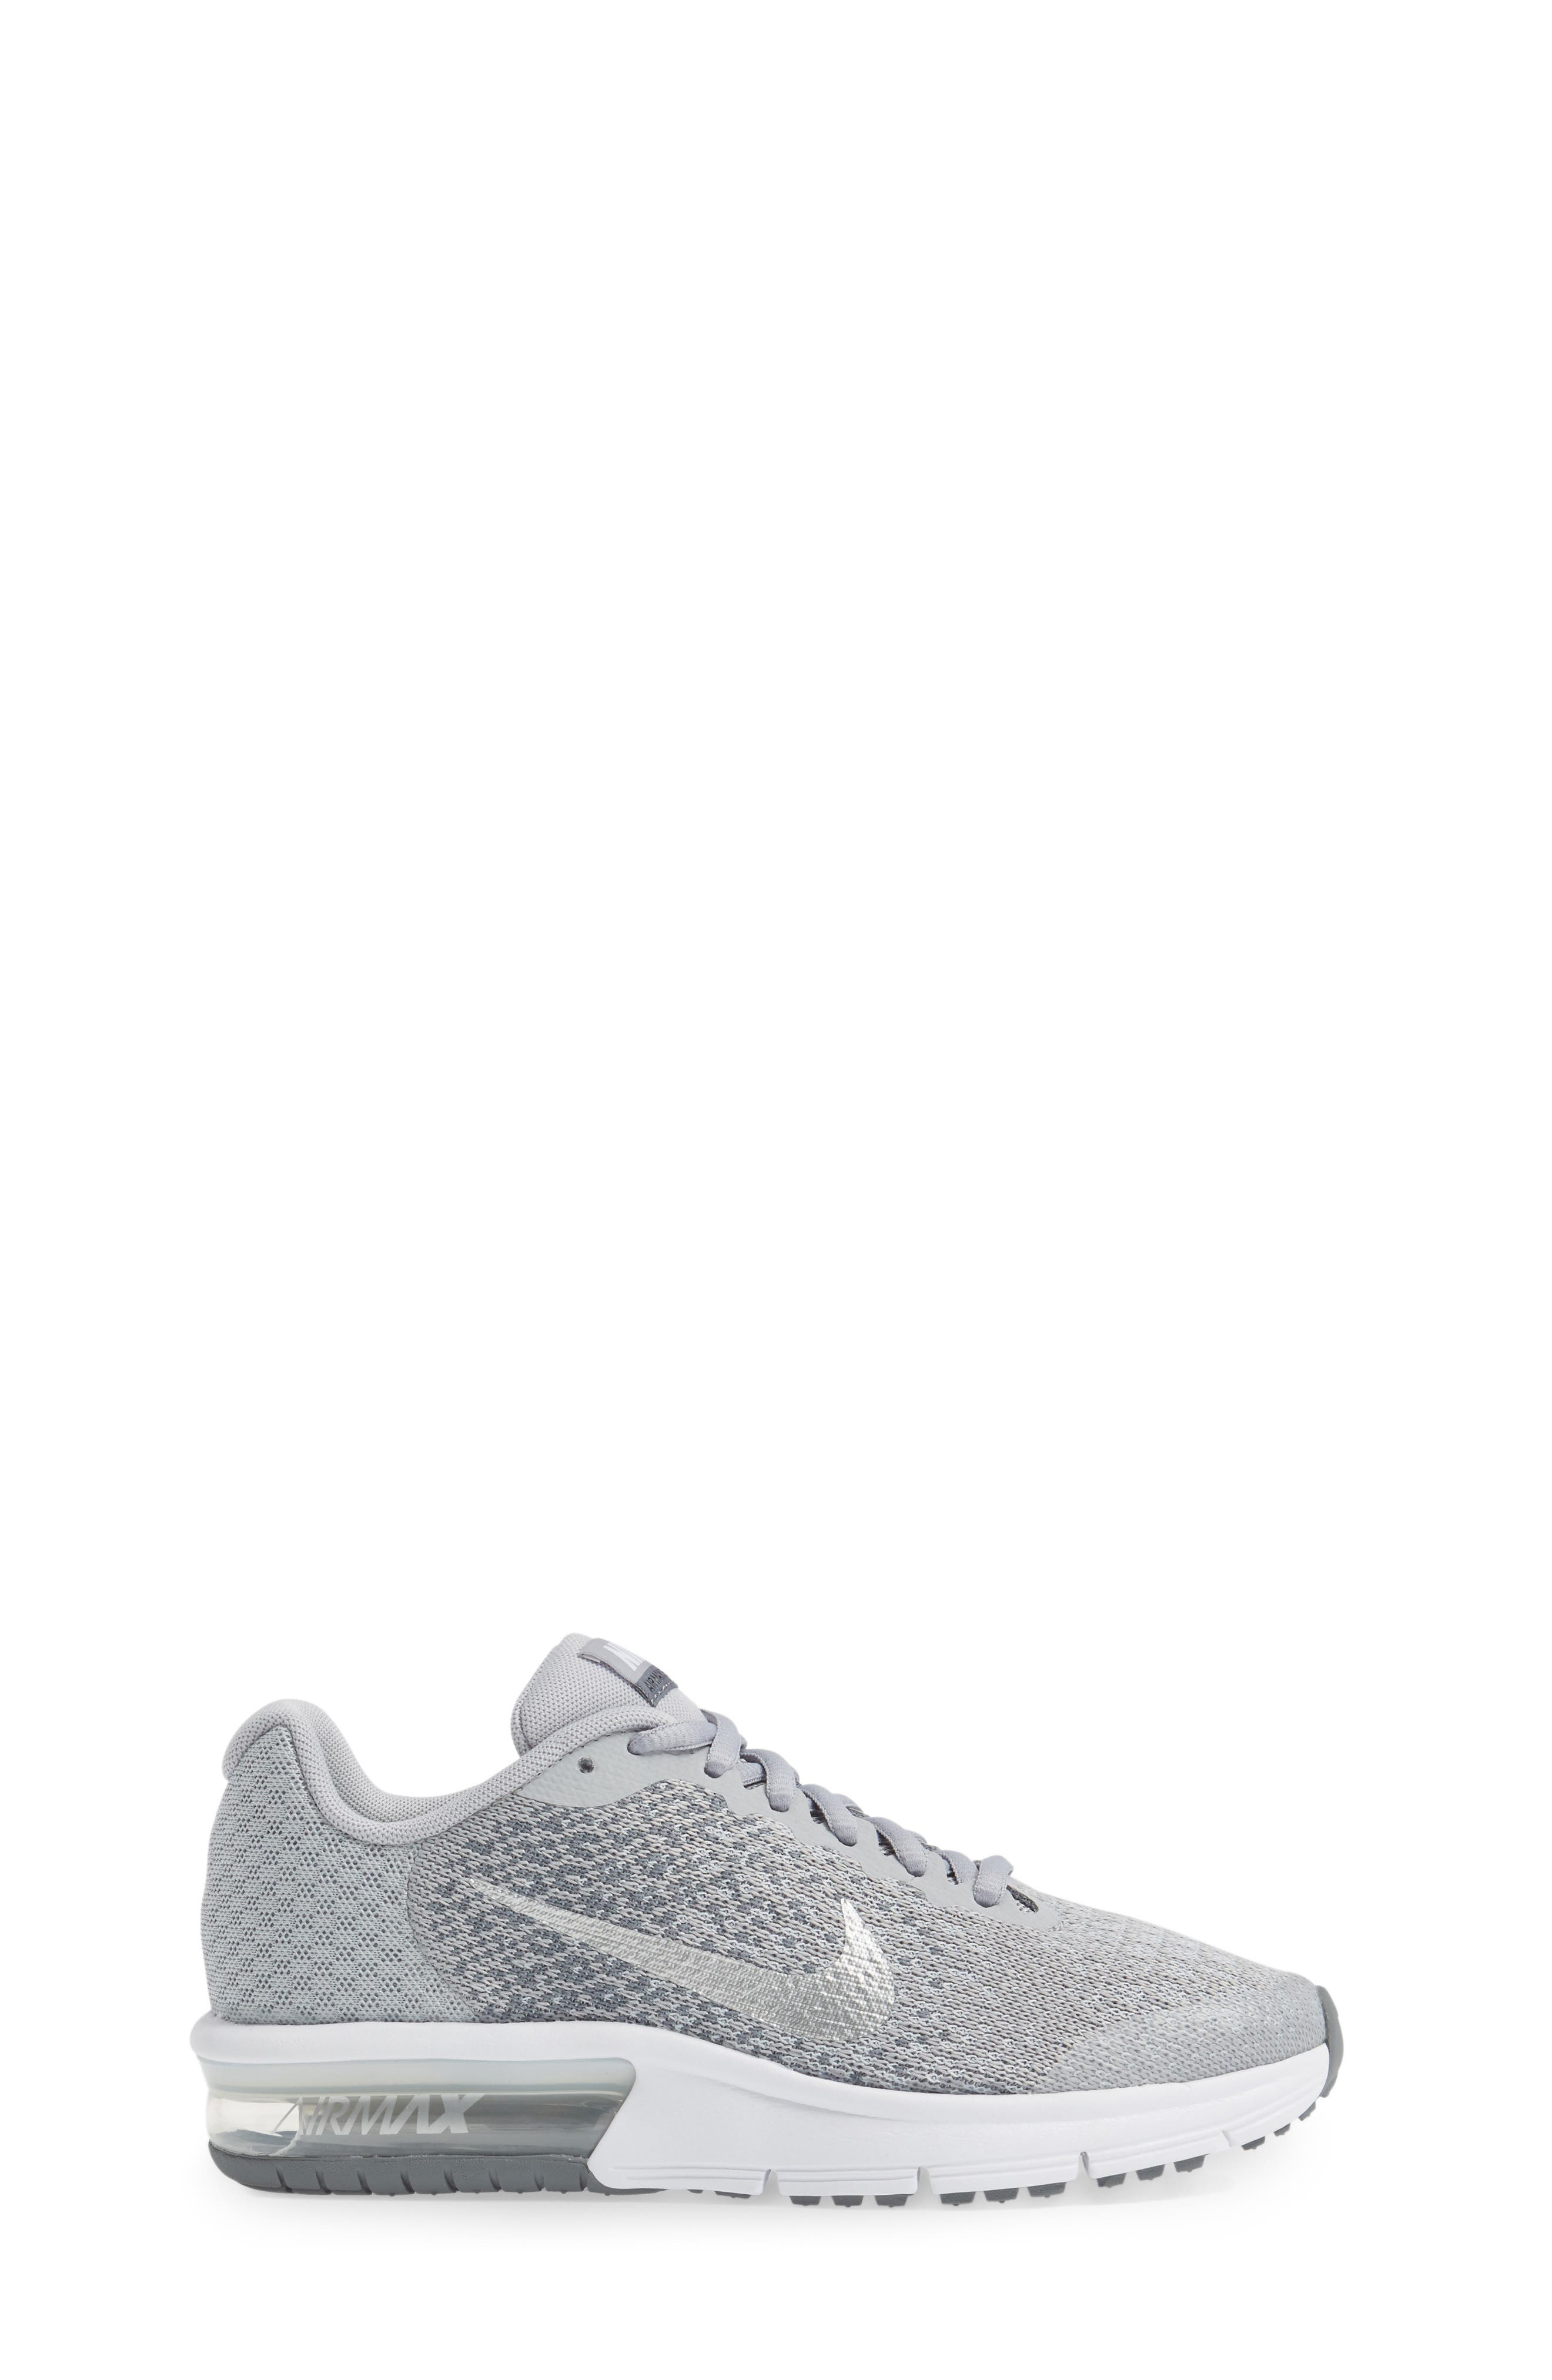 Air Max Sequent 2 Sneaker,                             Alternate thumbnail 3, color,                             020